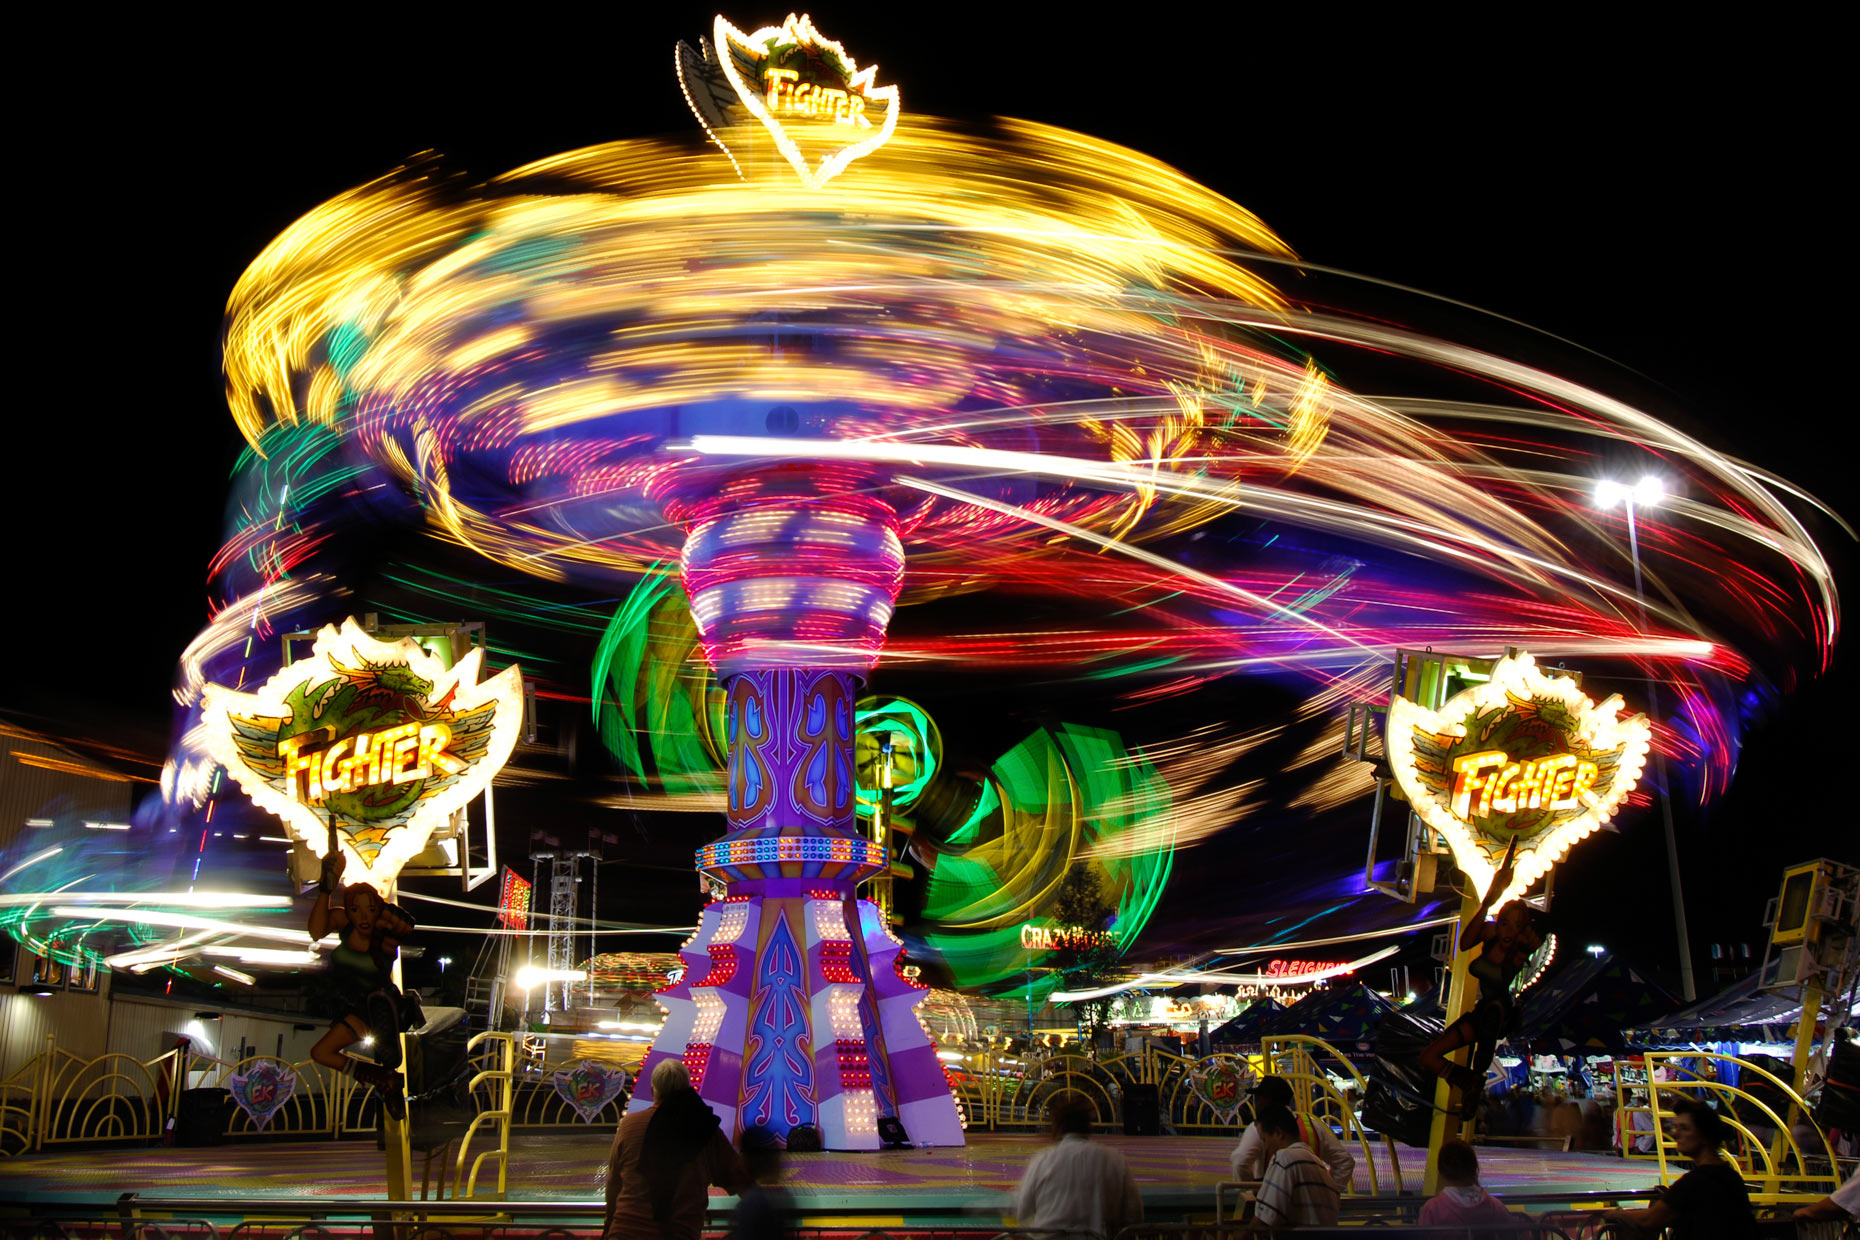 Midway ride at The State Fair of Texas. Photography by Kevin Brown